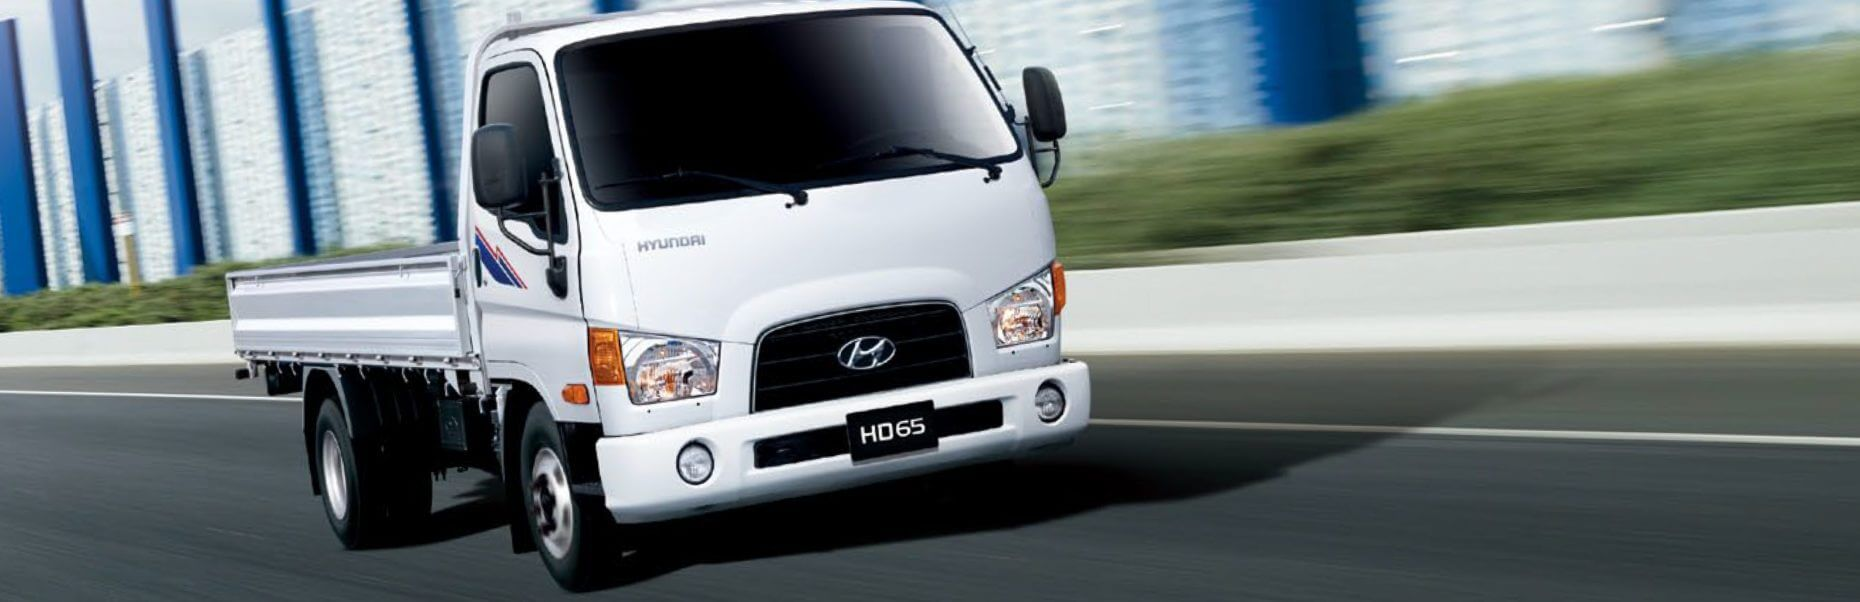 hight resolution of the hyundai hd series bring a new dynamism and capability to the light and medium duty trucks tough but stylish comfortable and dependable the hd series